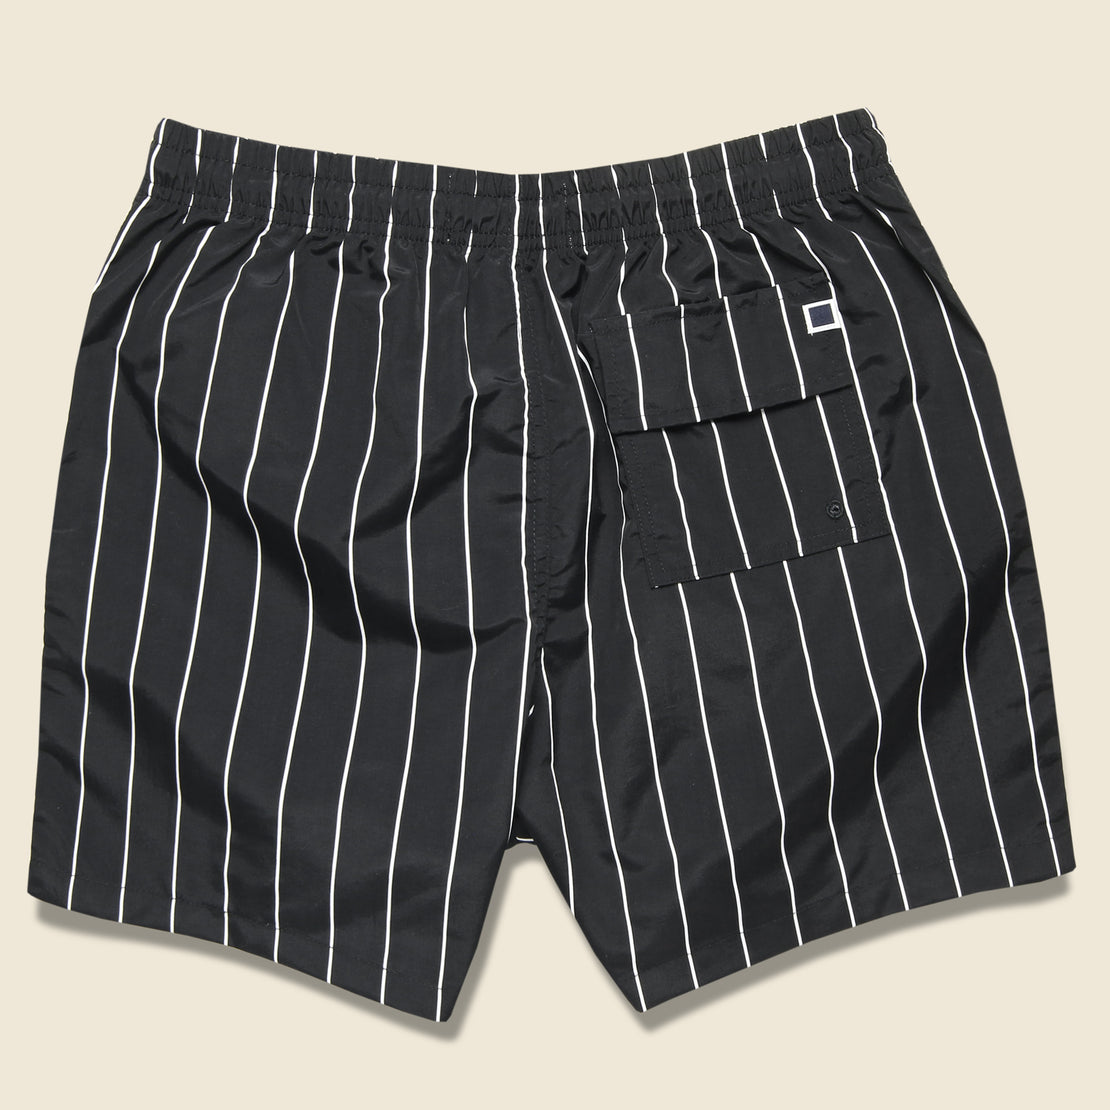 Pinstripe Swim Trunk - Black/Cream